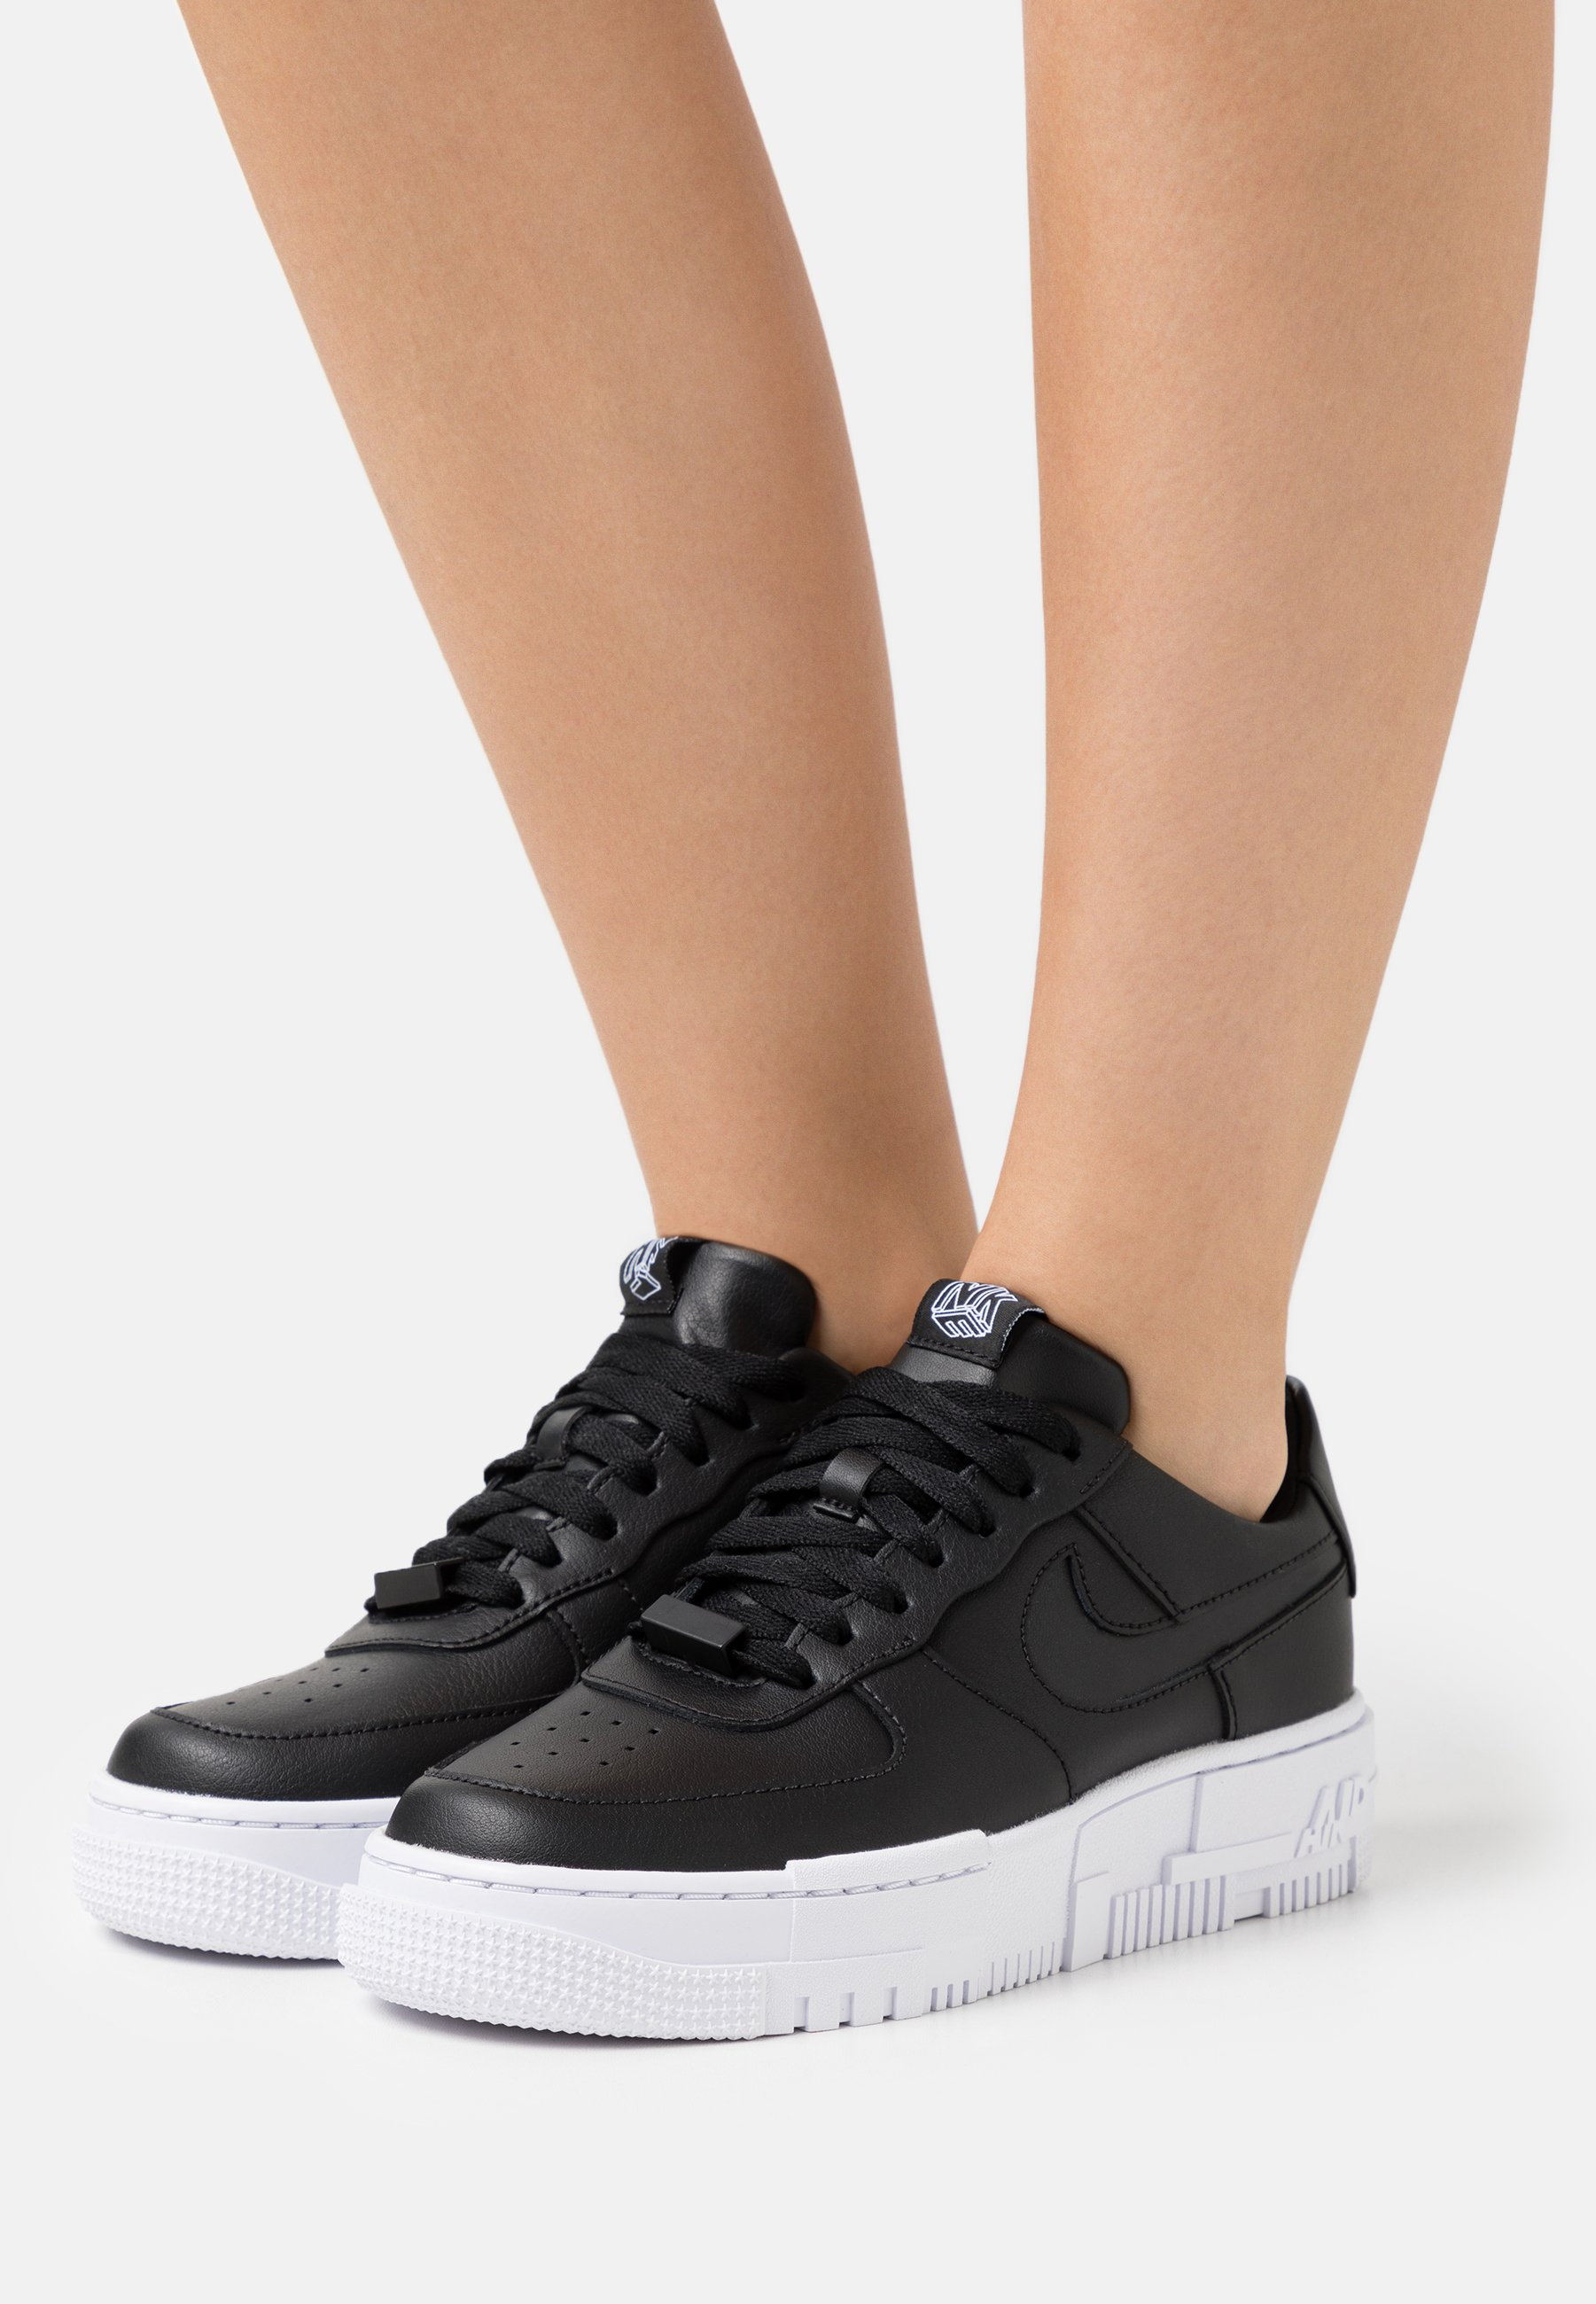 air force 1 donna nere basse